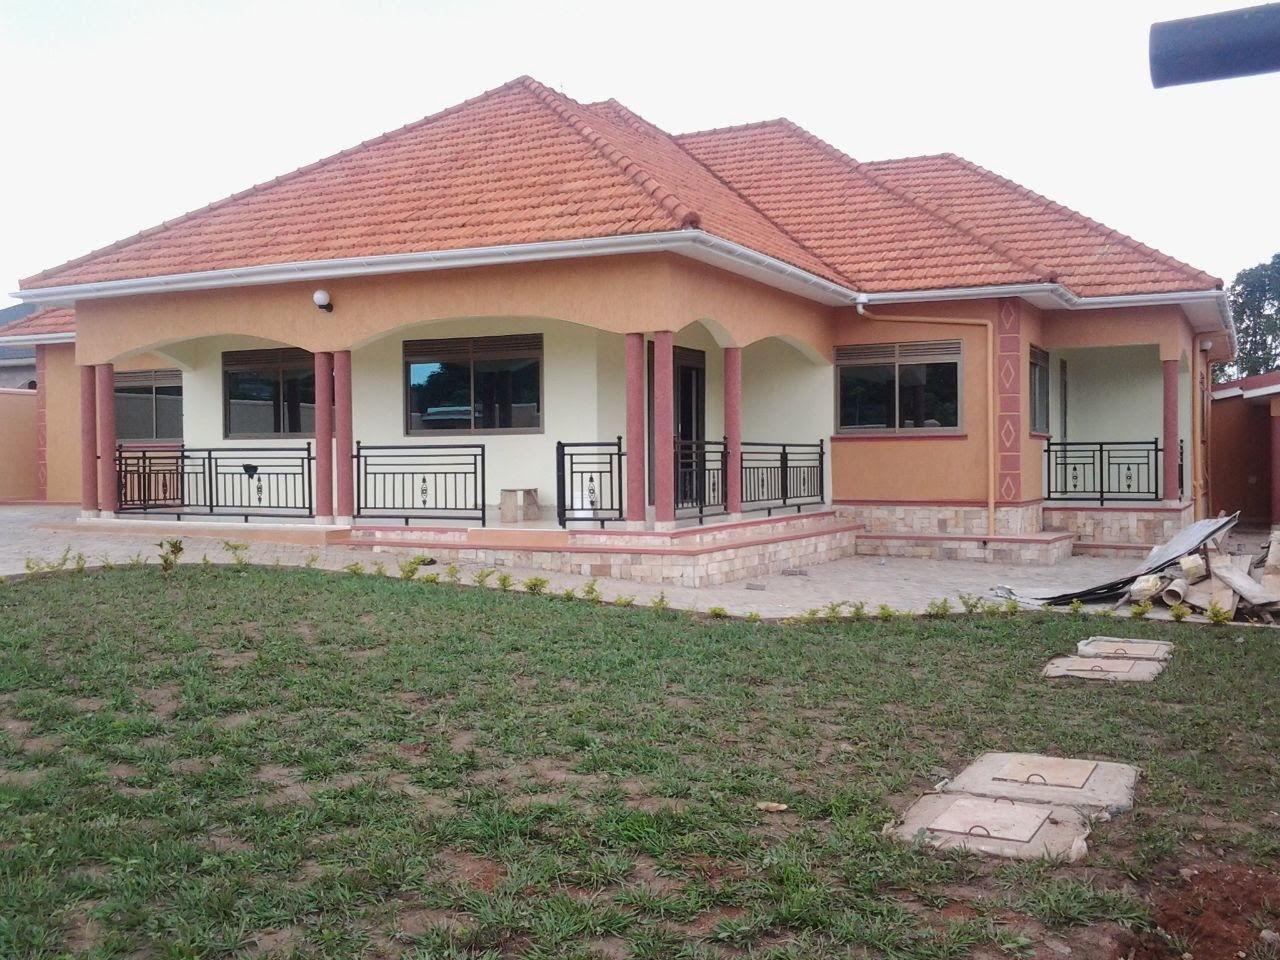 House for sale newly built on 25 decimals price ugx 500m